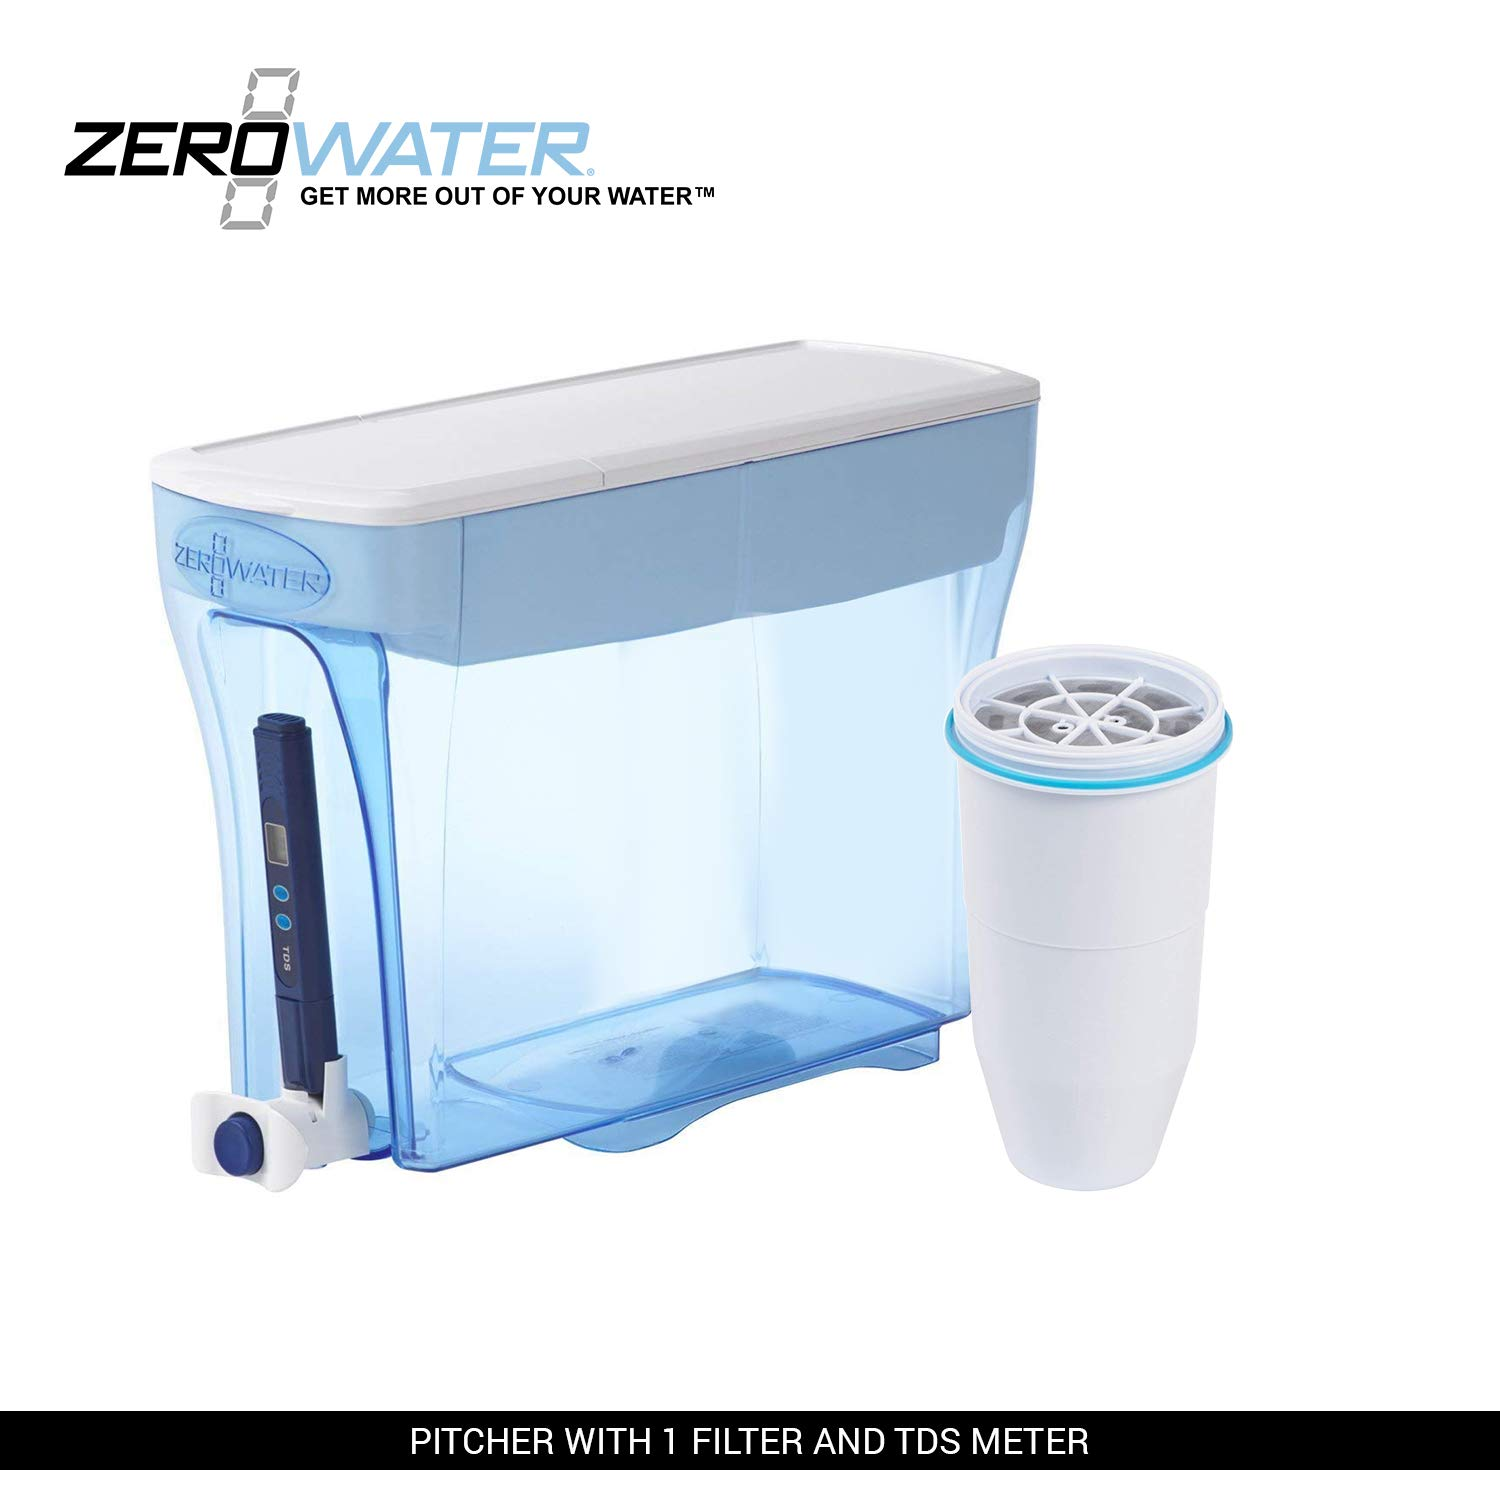 ZeroWater 23-Cup Pitcher with Filter and Water Quality Meter